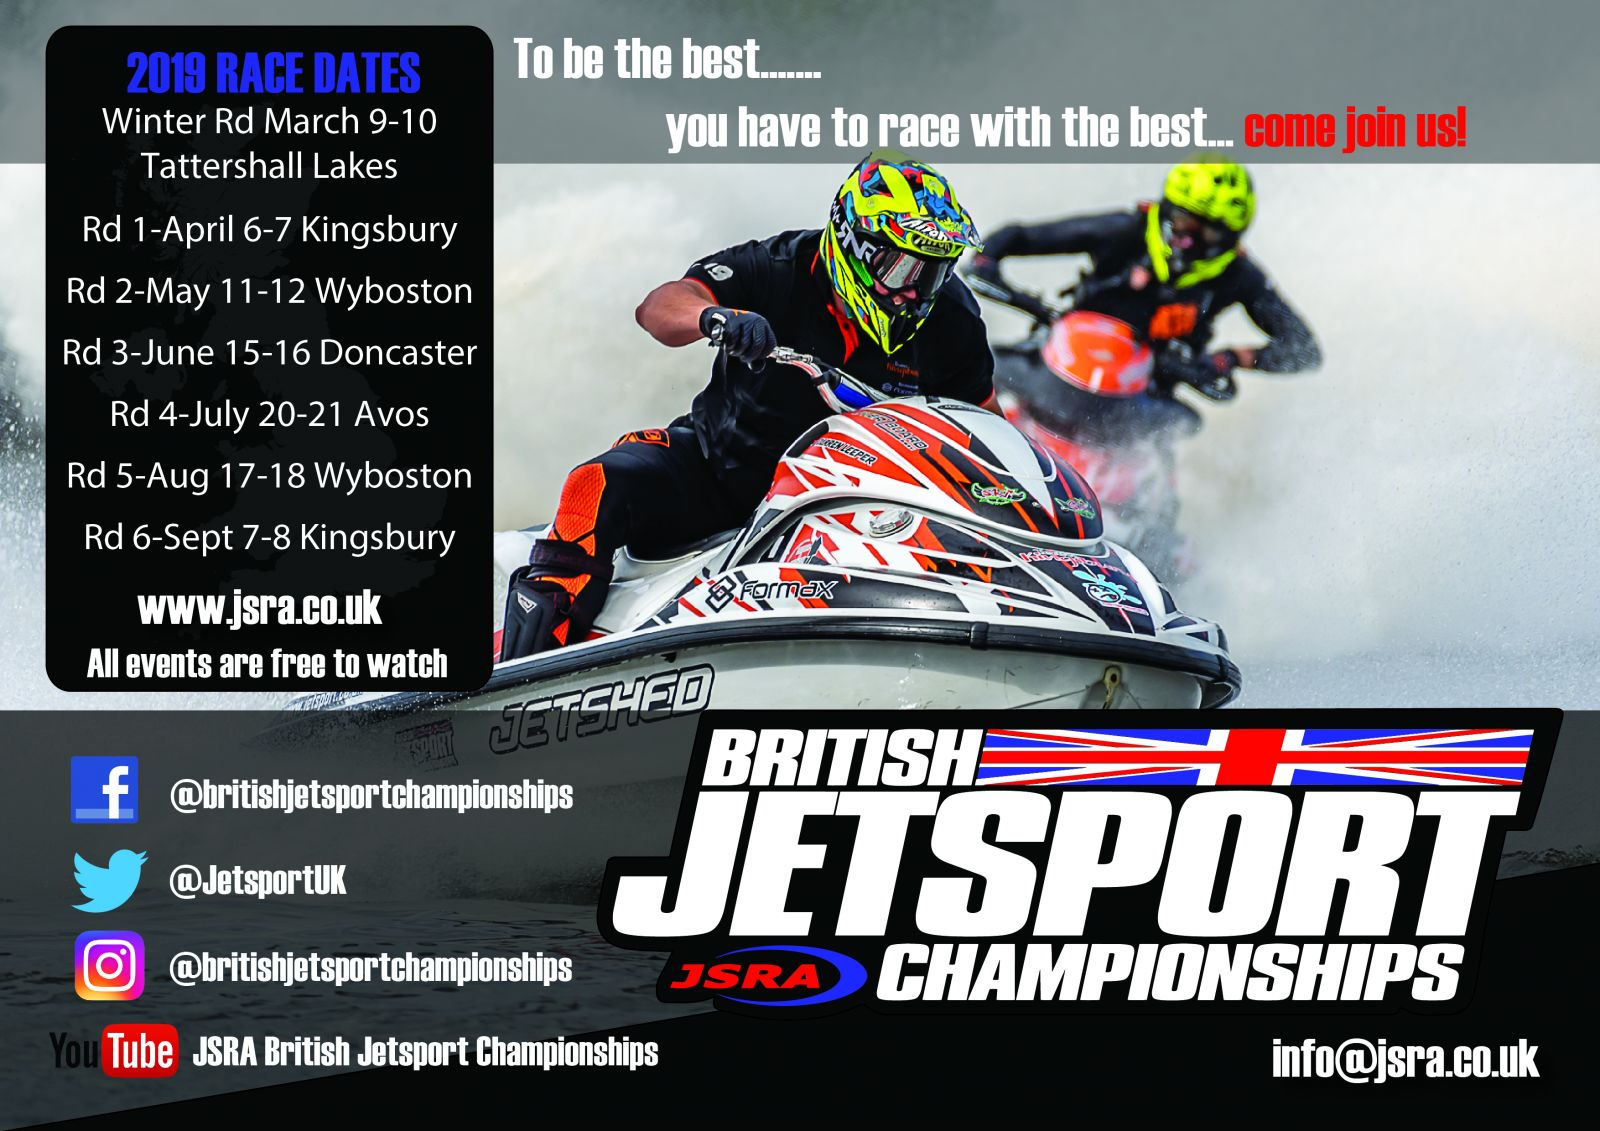 2019 British Jetsport Championships Race Dates